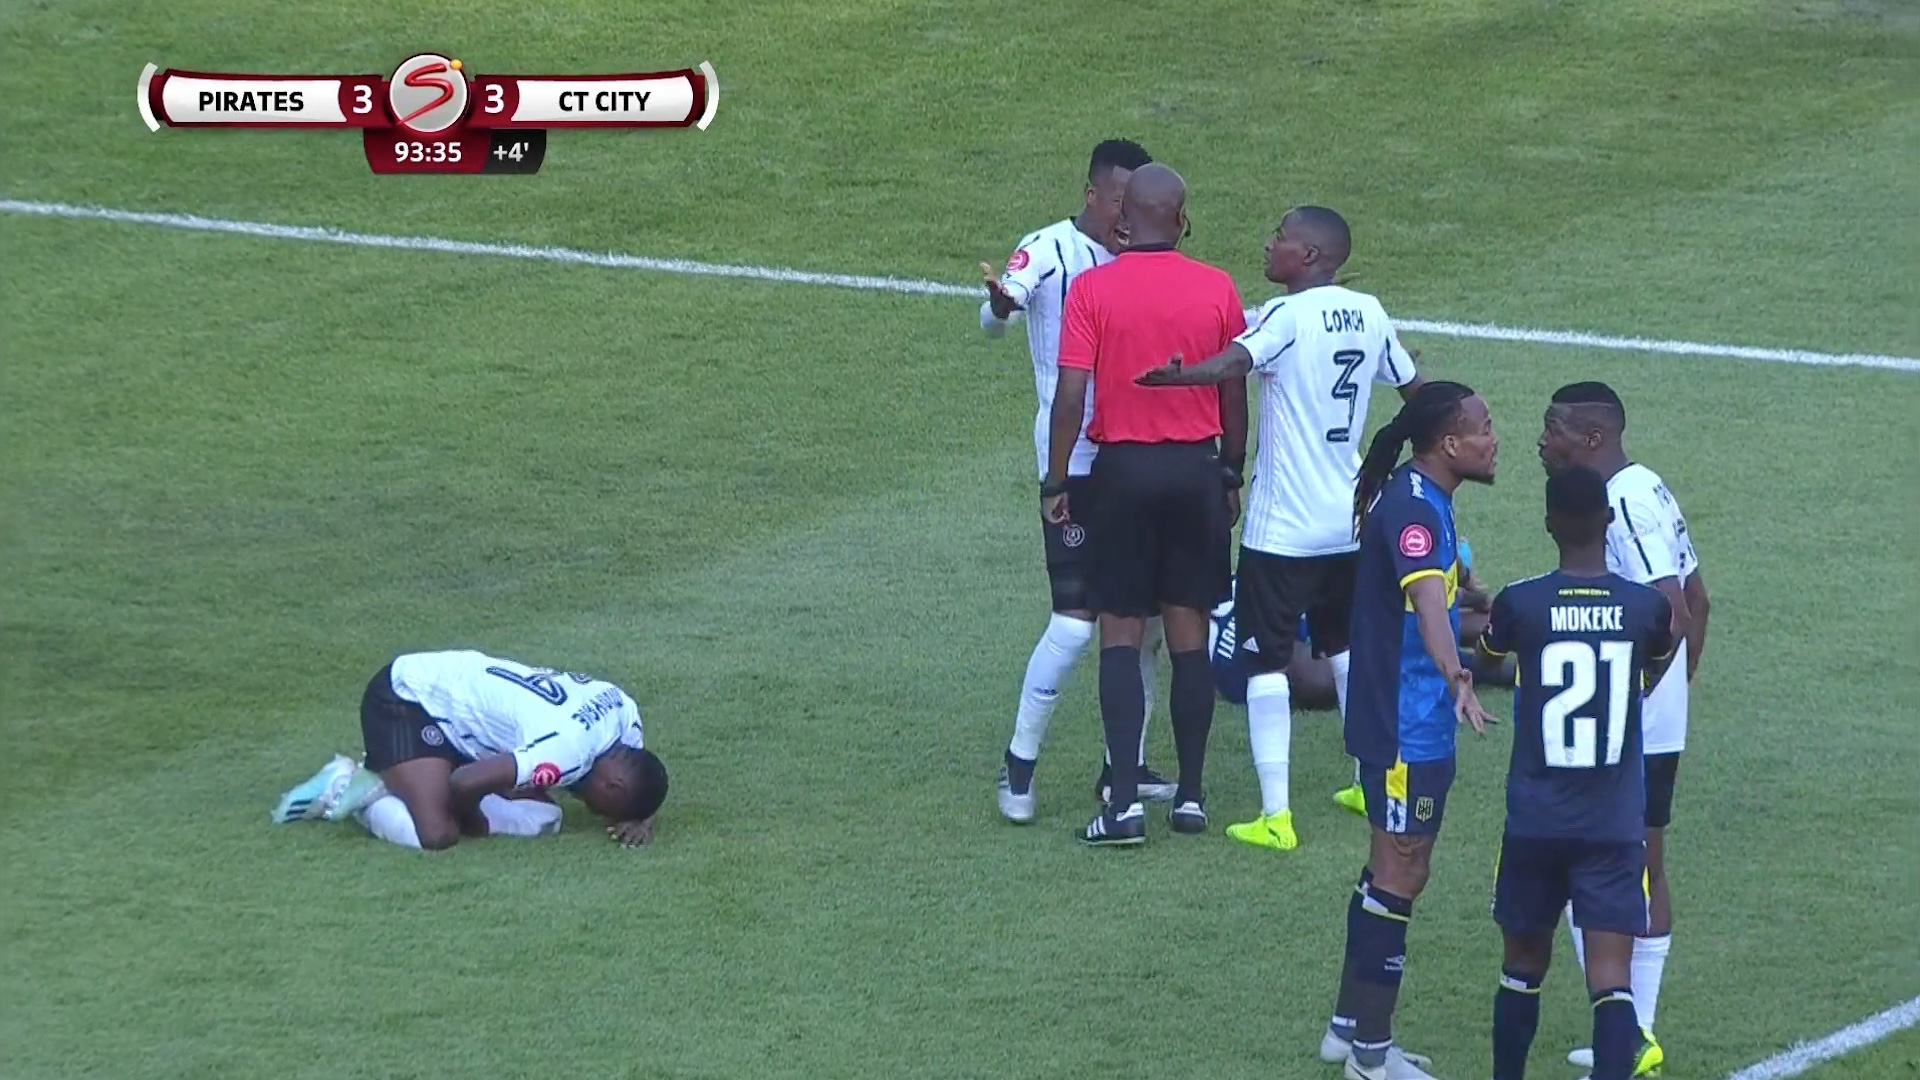 Absa Premiership | Orlando Pirates v Cape Town City | Penalty or not?